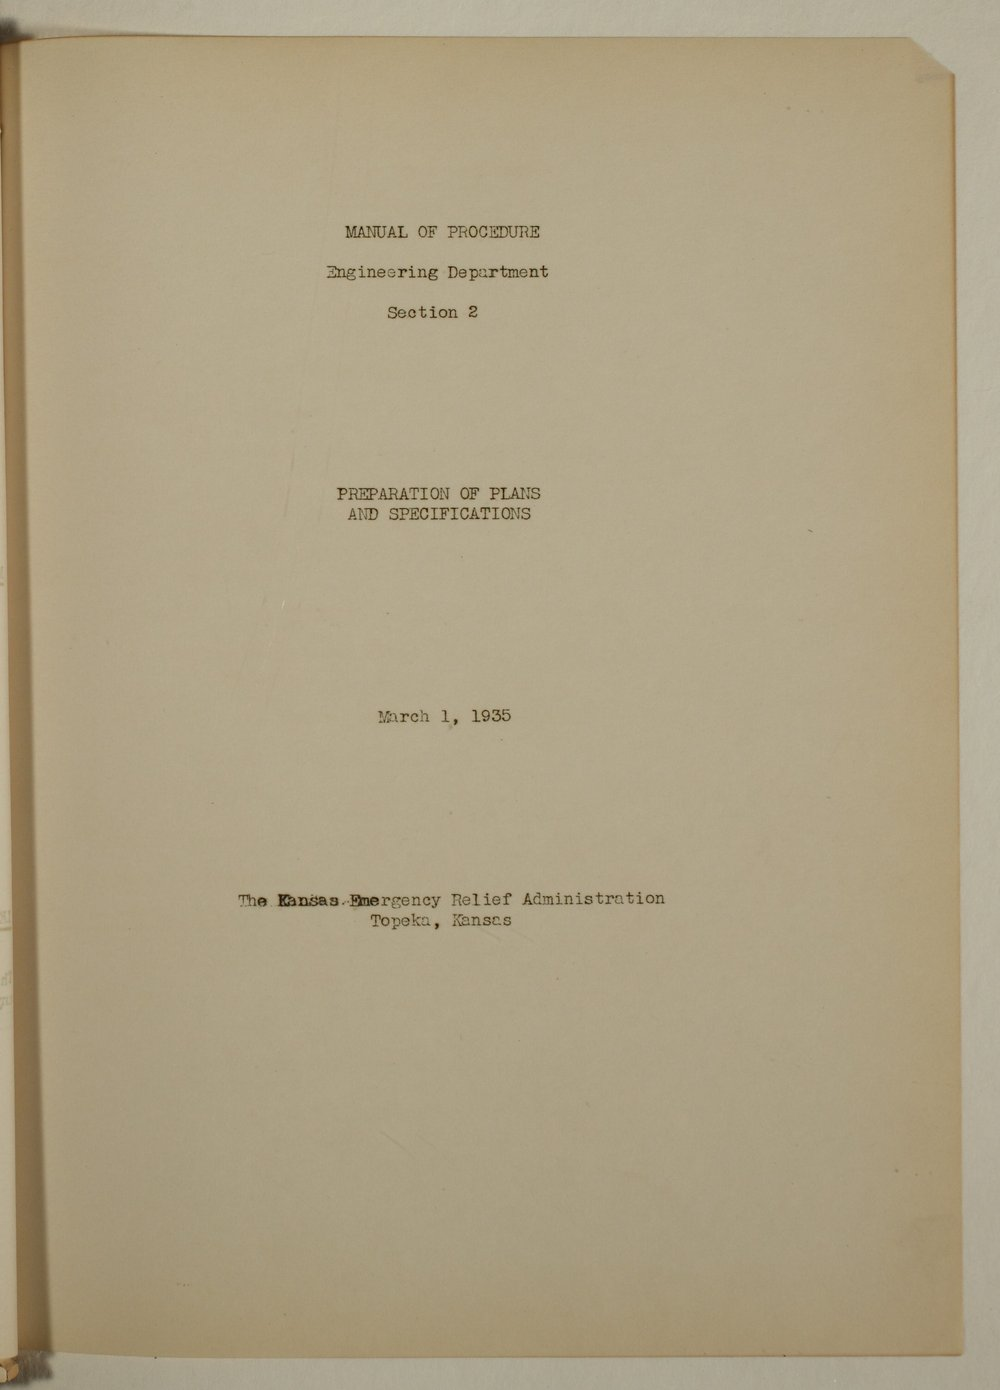 Manual of procedure, engineering department - Title Page, Section 2